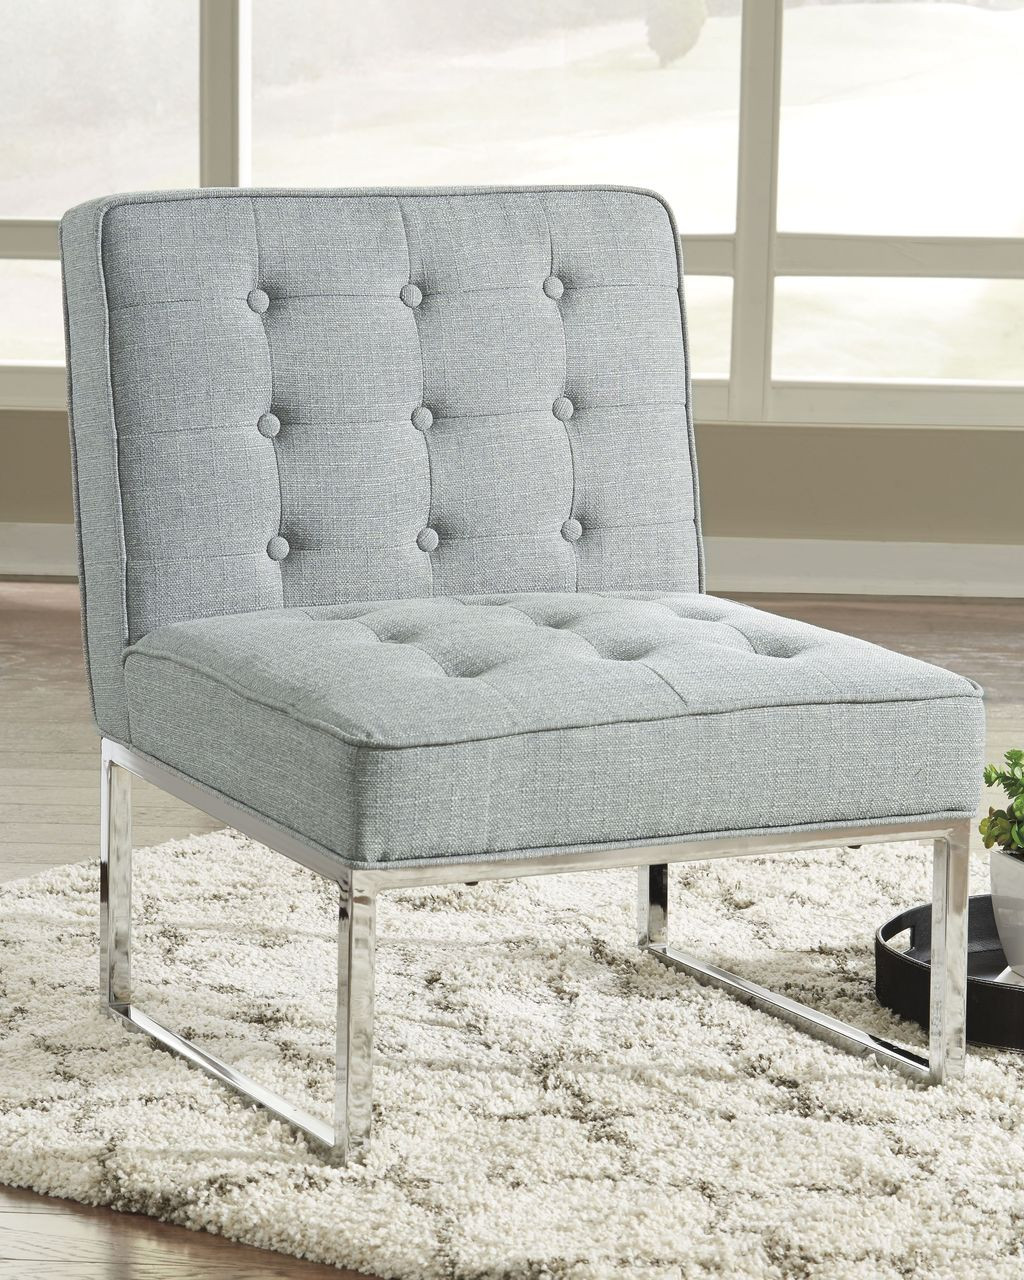 Prime The Cimarosse Gray Accent Chair Available At Ritz Furniture Bralicious Painted Fabric Chair Ideas Braliciousco